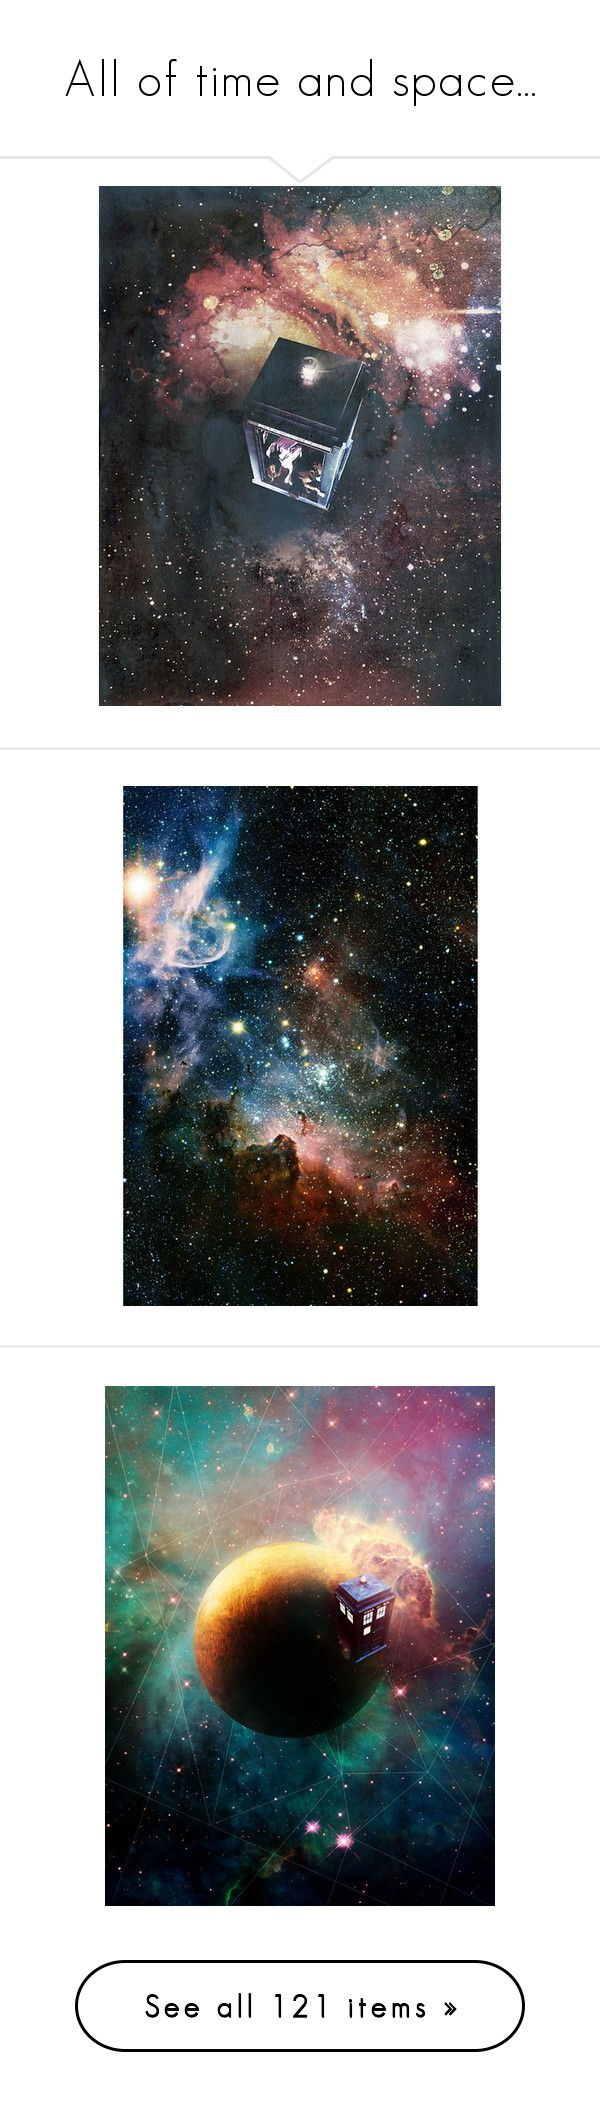 """""""All of time and space..."""" by faylane ❤ liked on Polyvore featuring doctorwho, doctor who, backgrounds, photos, images, dw, home, bed & bath, bedding and bed sheets"""